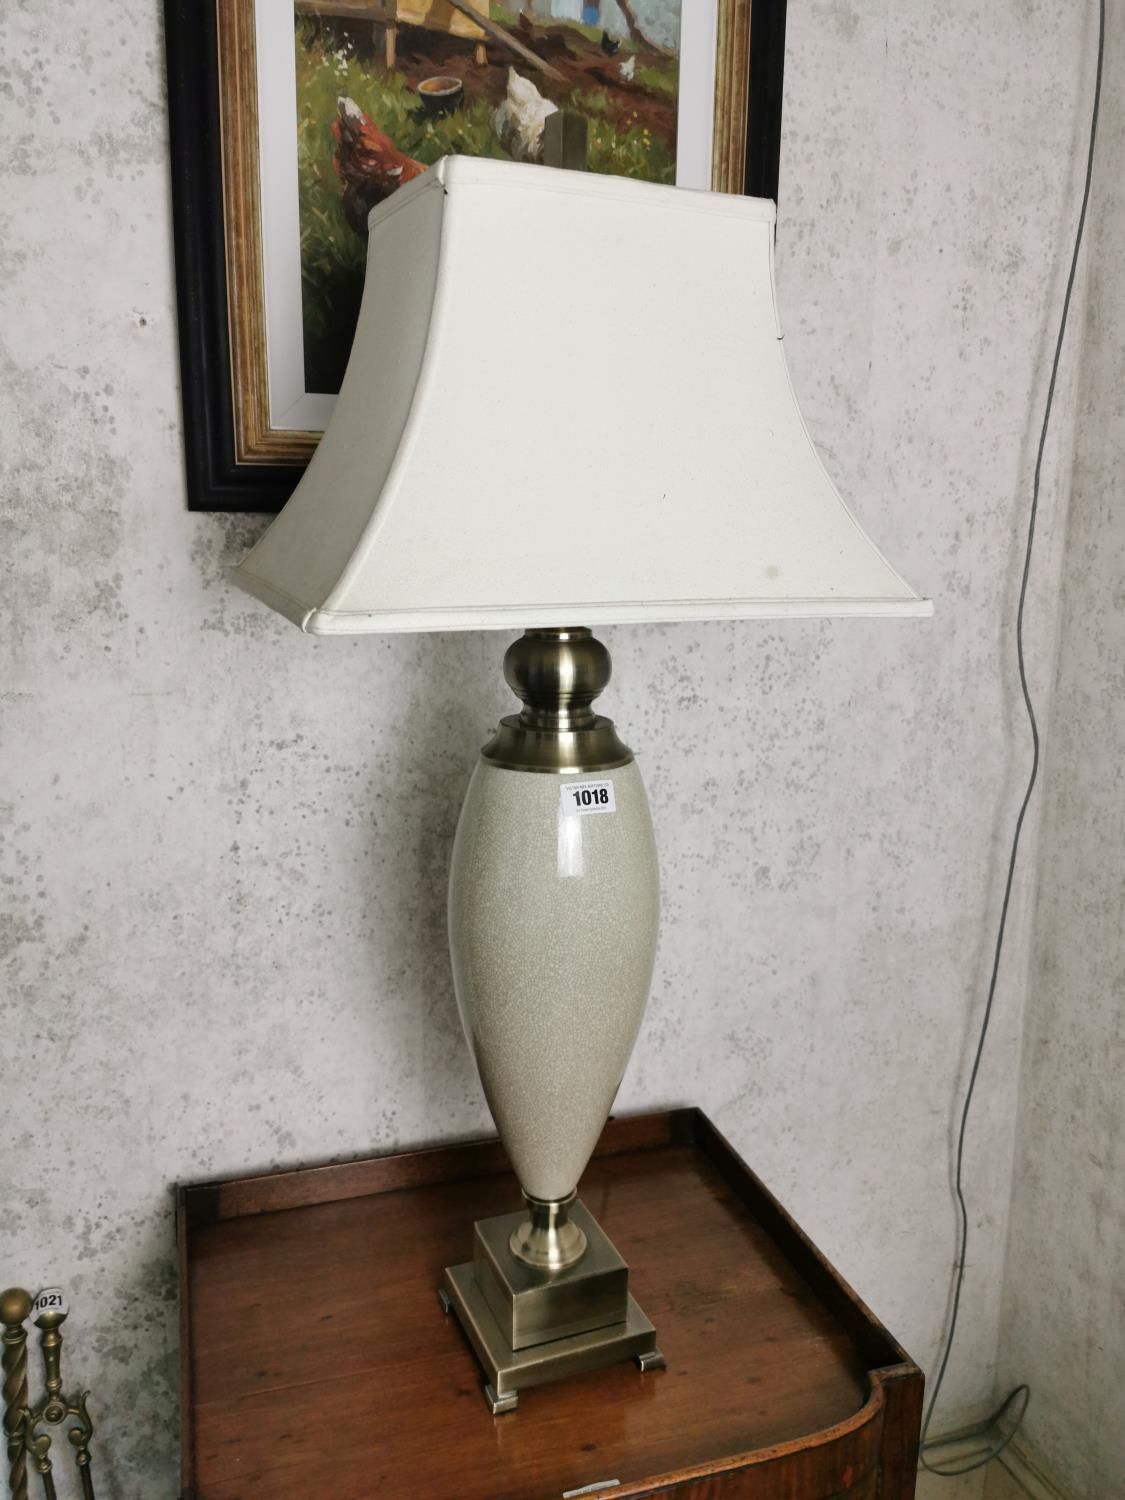 Brushed steel and ceramic table lamp.